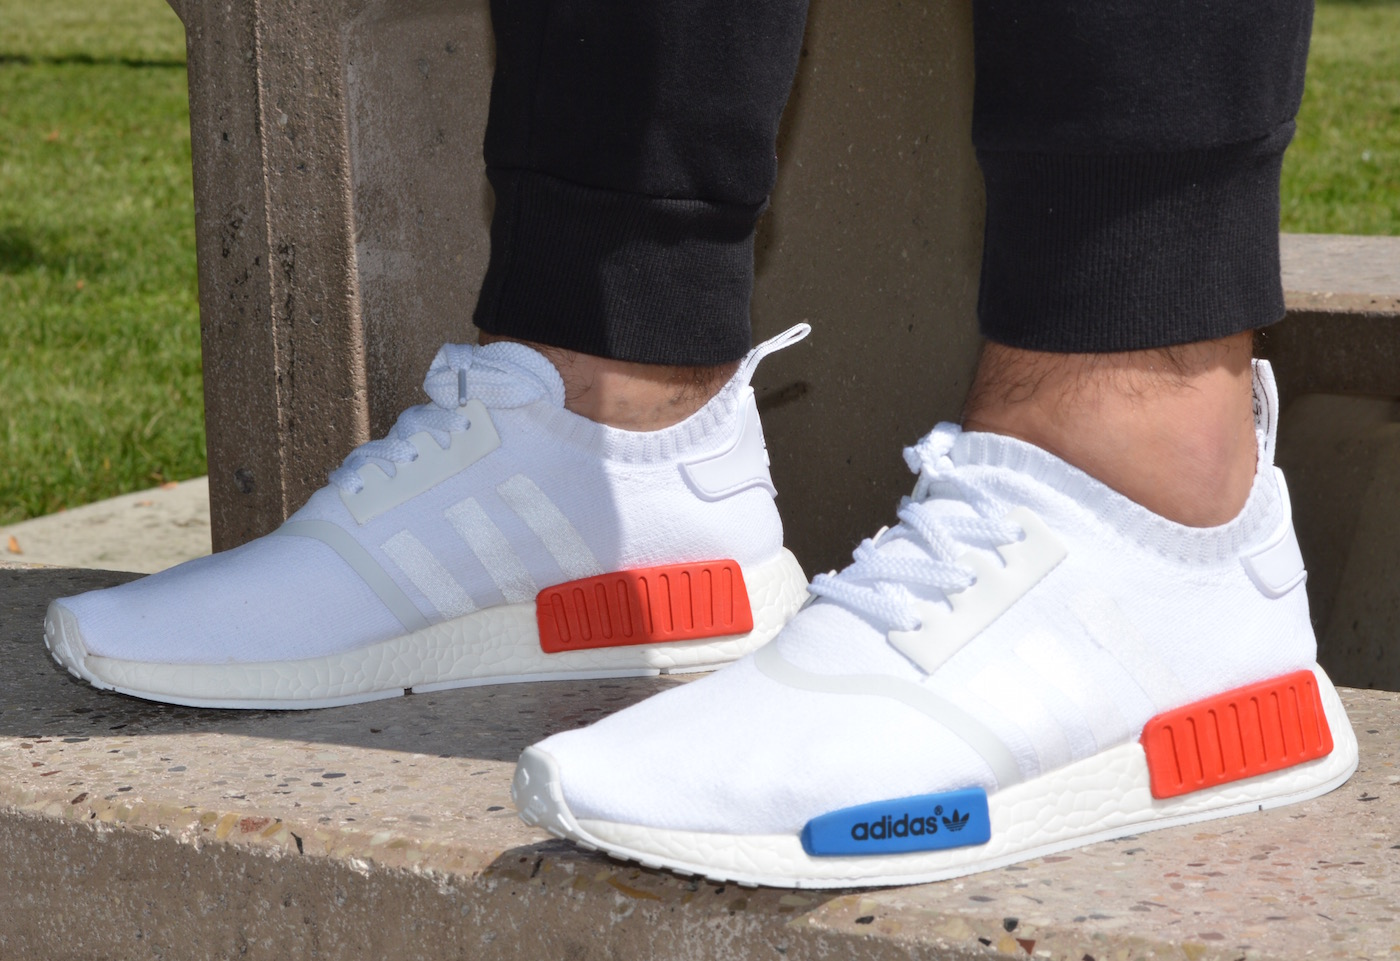 fzuvol Adidas Nmd Red And White packaging-news-weekly.co.uk